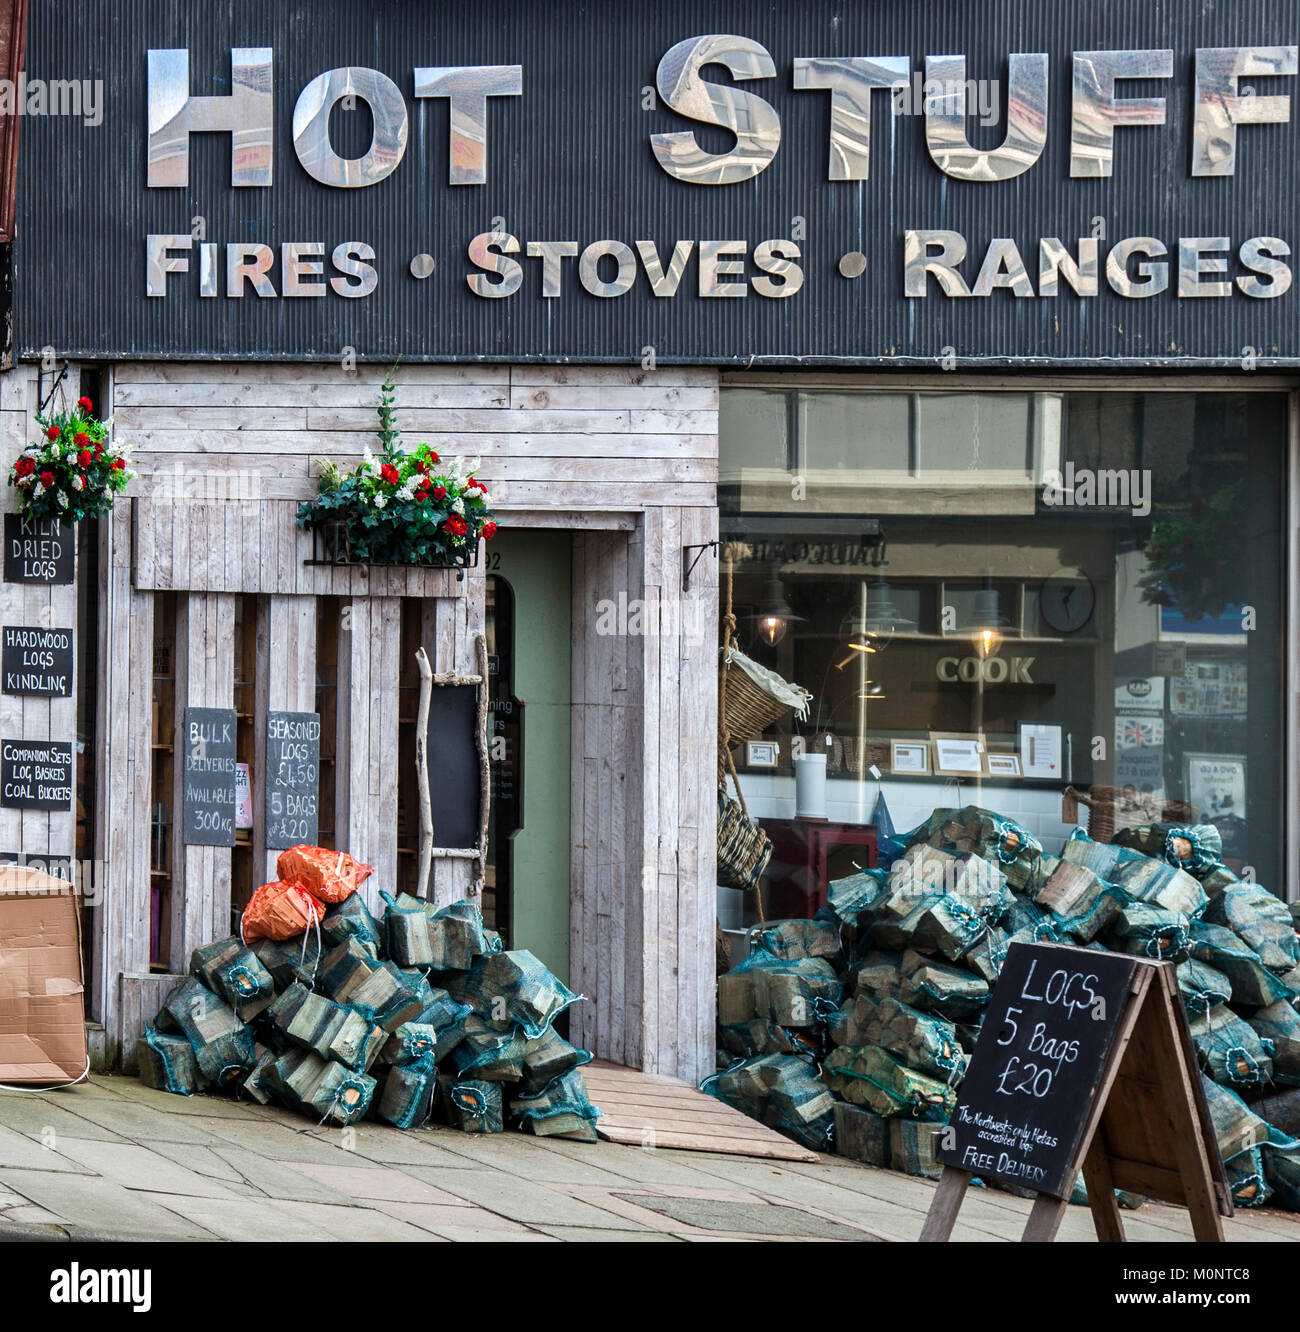 Showroom and store selling Wood Burning Stoves, Ranges, wood, sticks, timber, bagged logs & kindling for open - Stock Image